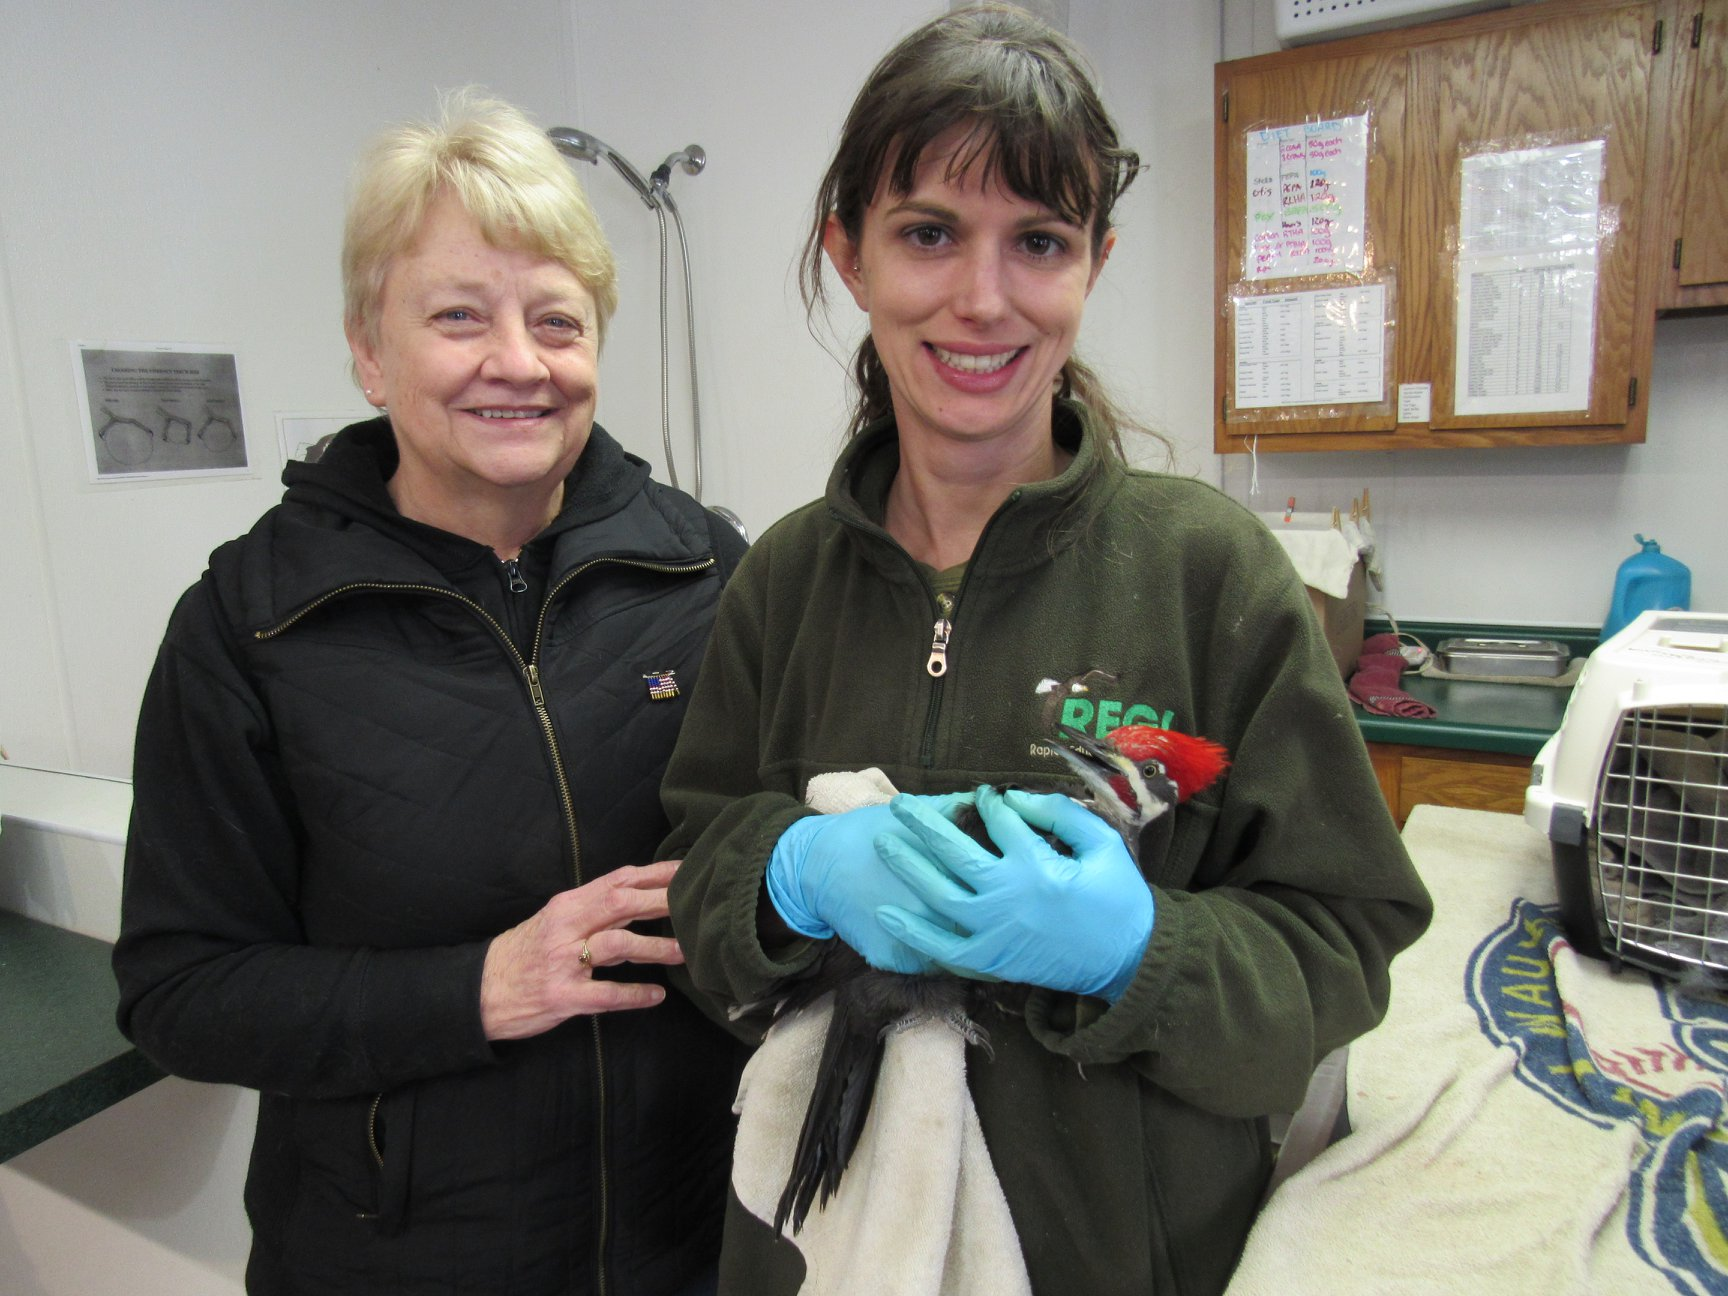 Mary M. found the injured woodpecker, brought him in for care and then released him. His mate was very happy he came back home again. Thanks so much Mary.